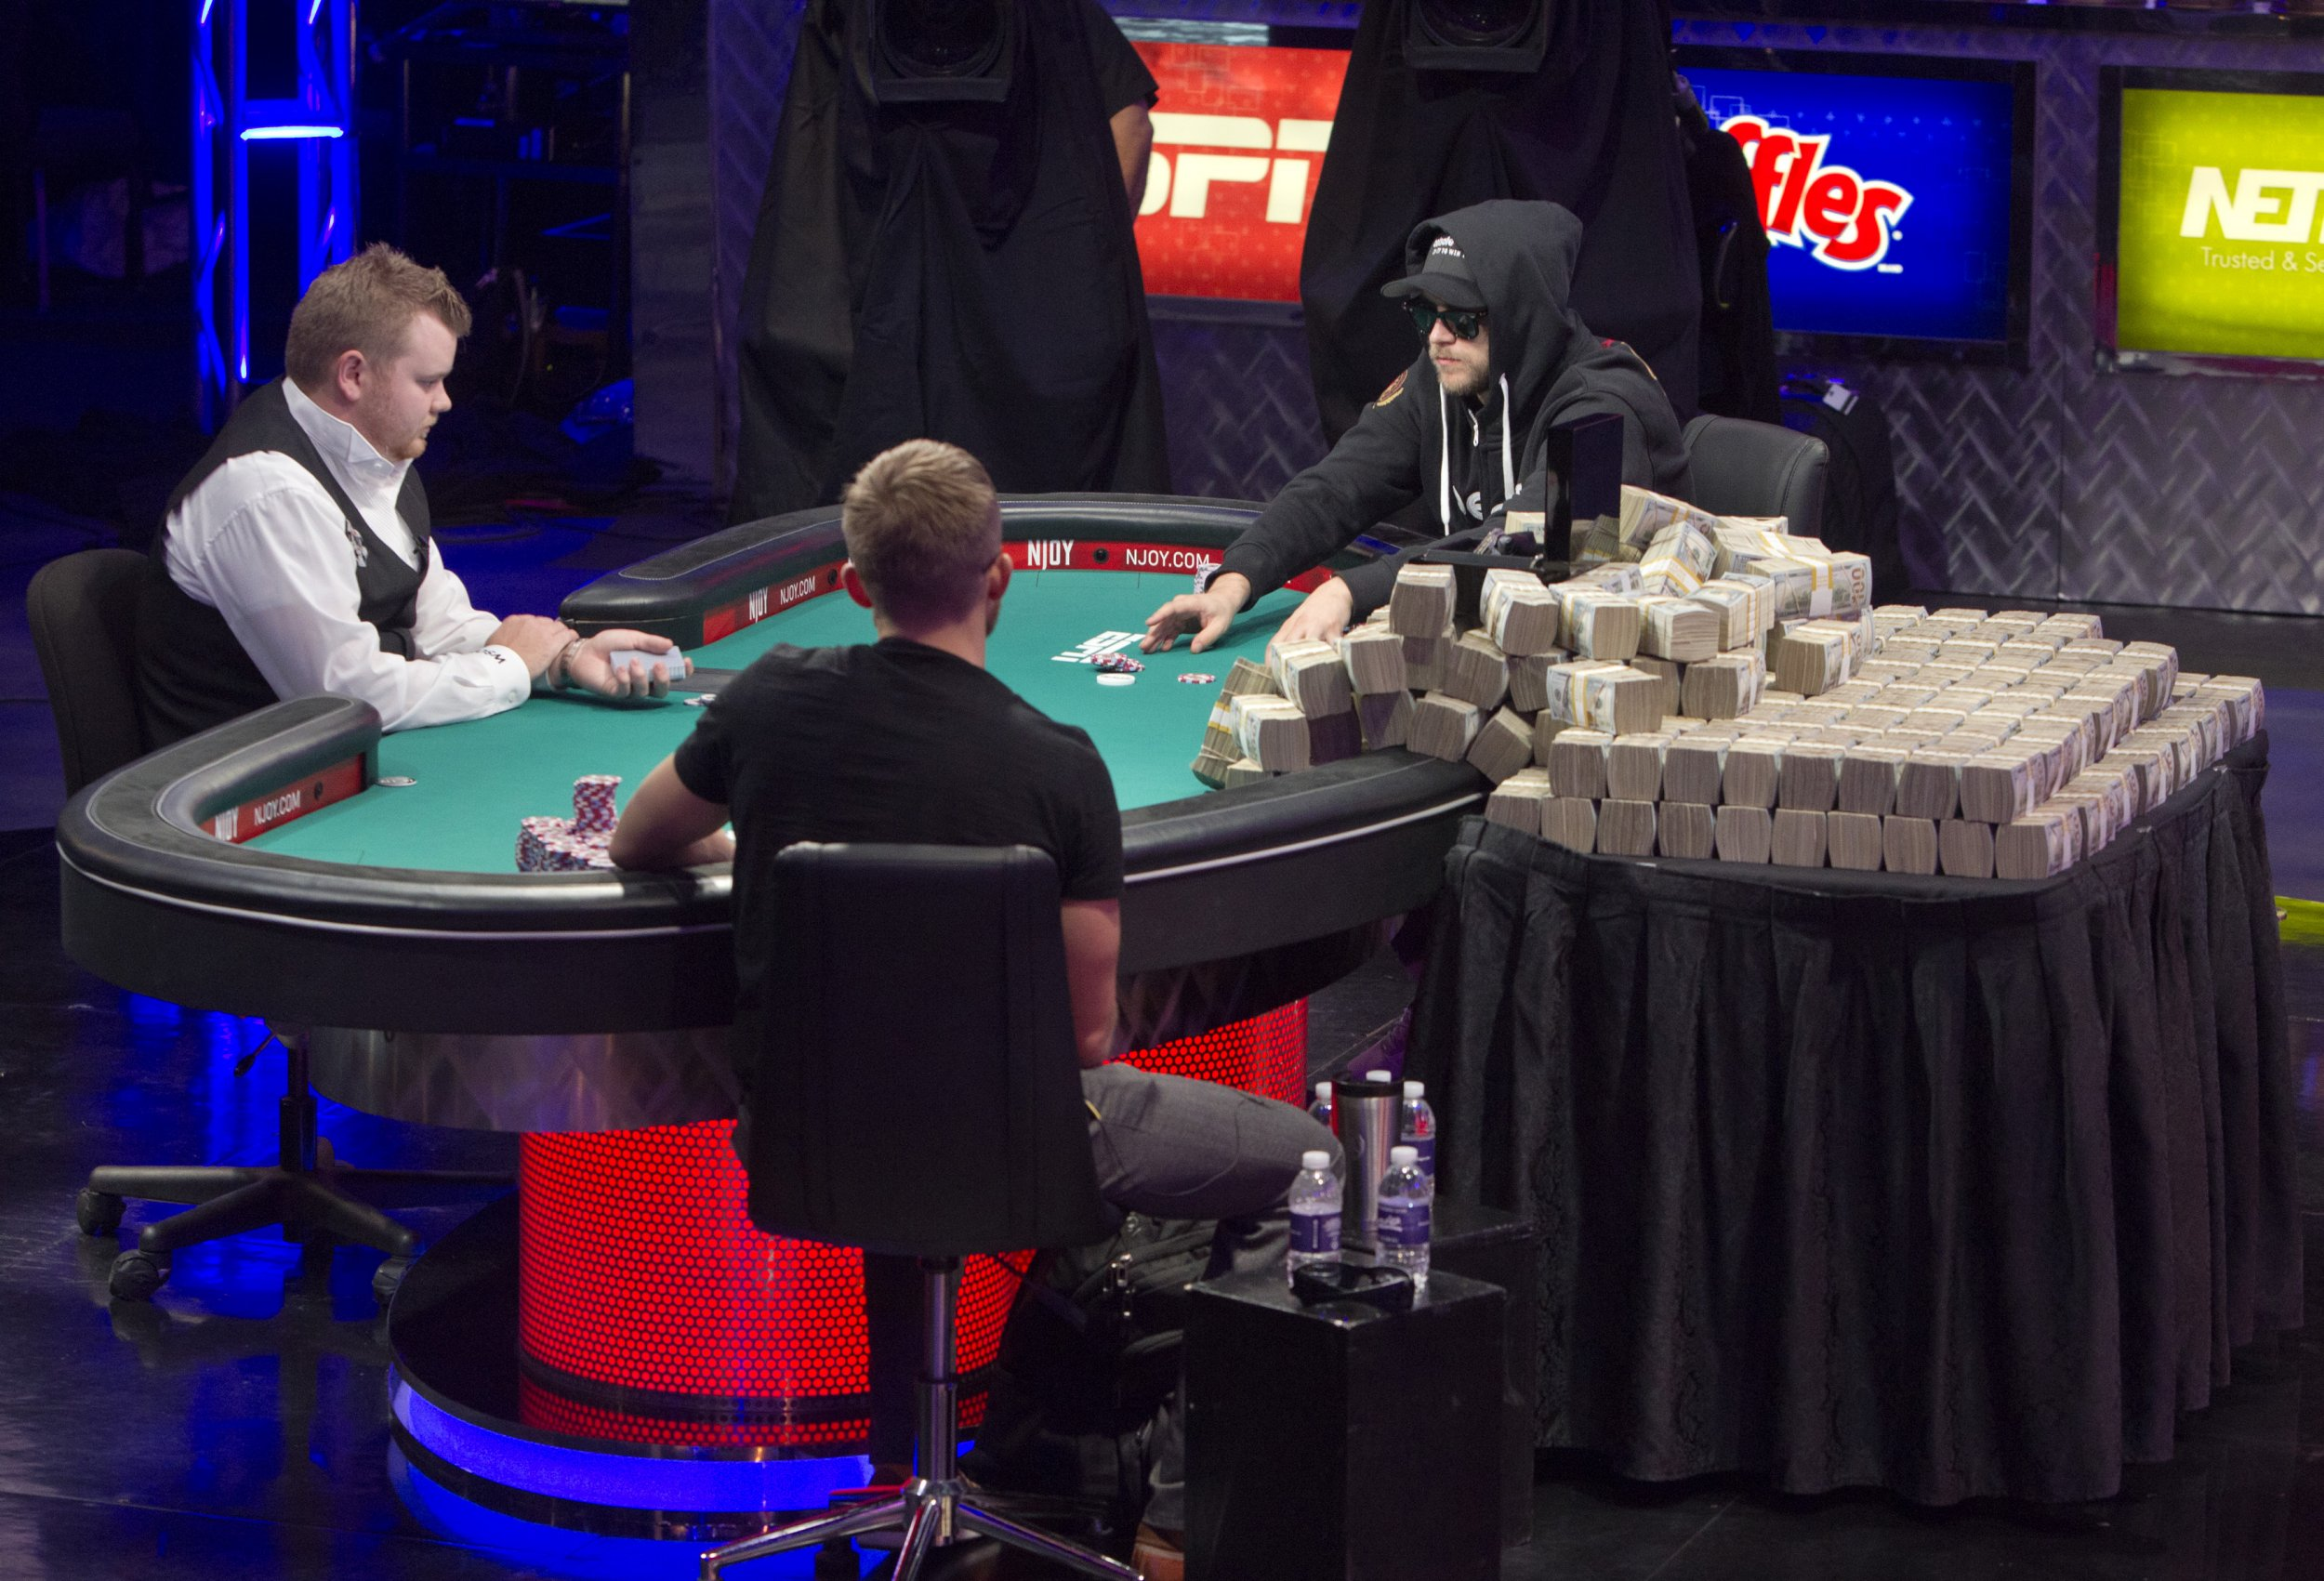 Opinion: Is Poker a Game of Chance or Skill? - Newsweek (03/29/2015)